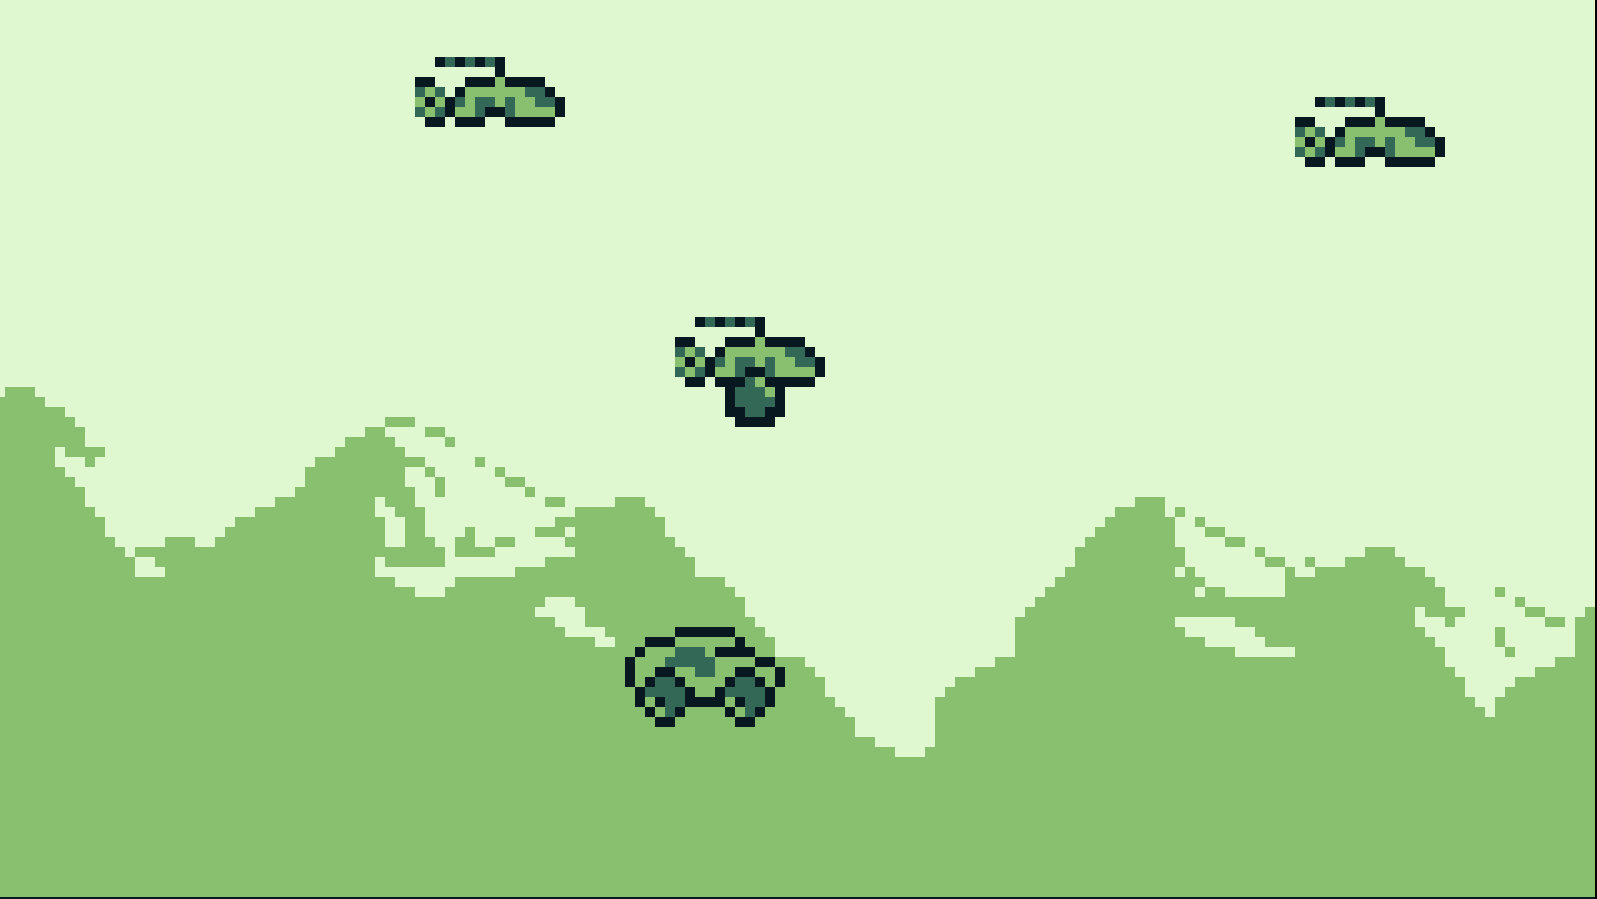 A prolific Flash developer is preserving one of his games with a Gameboy port